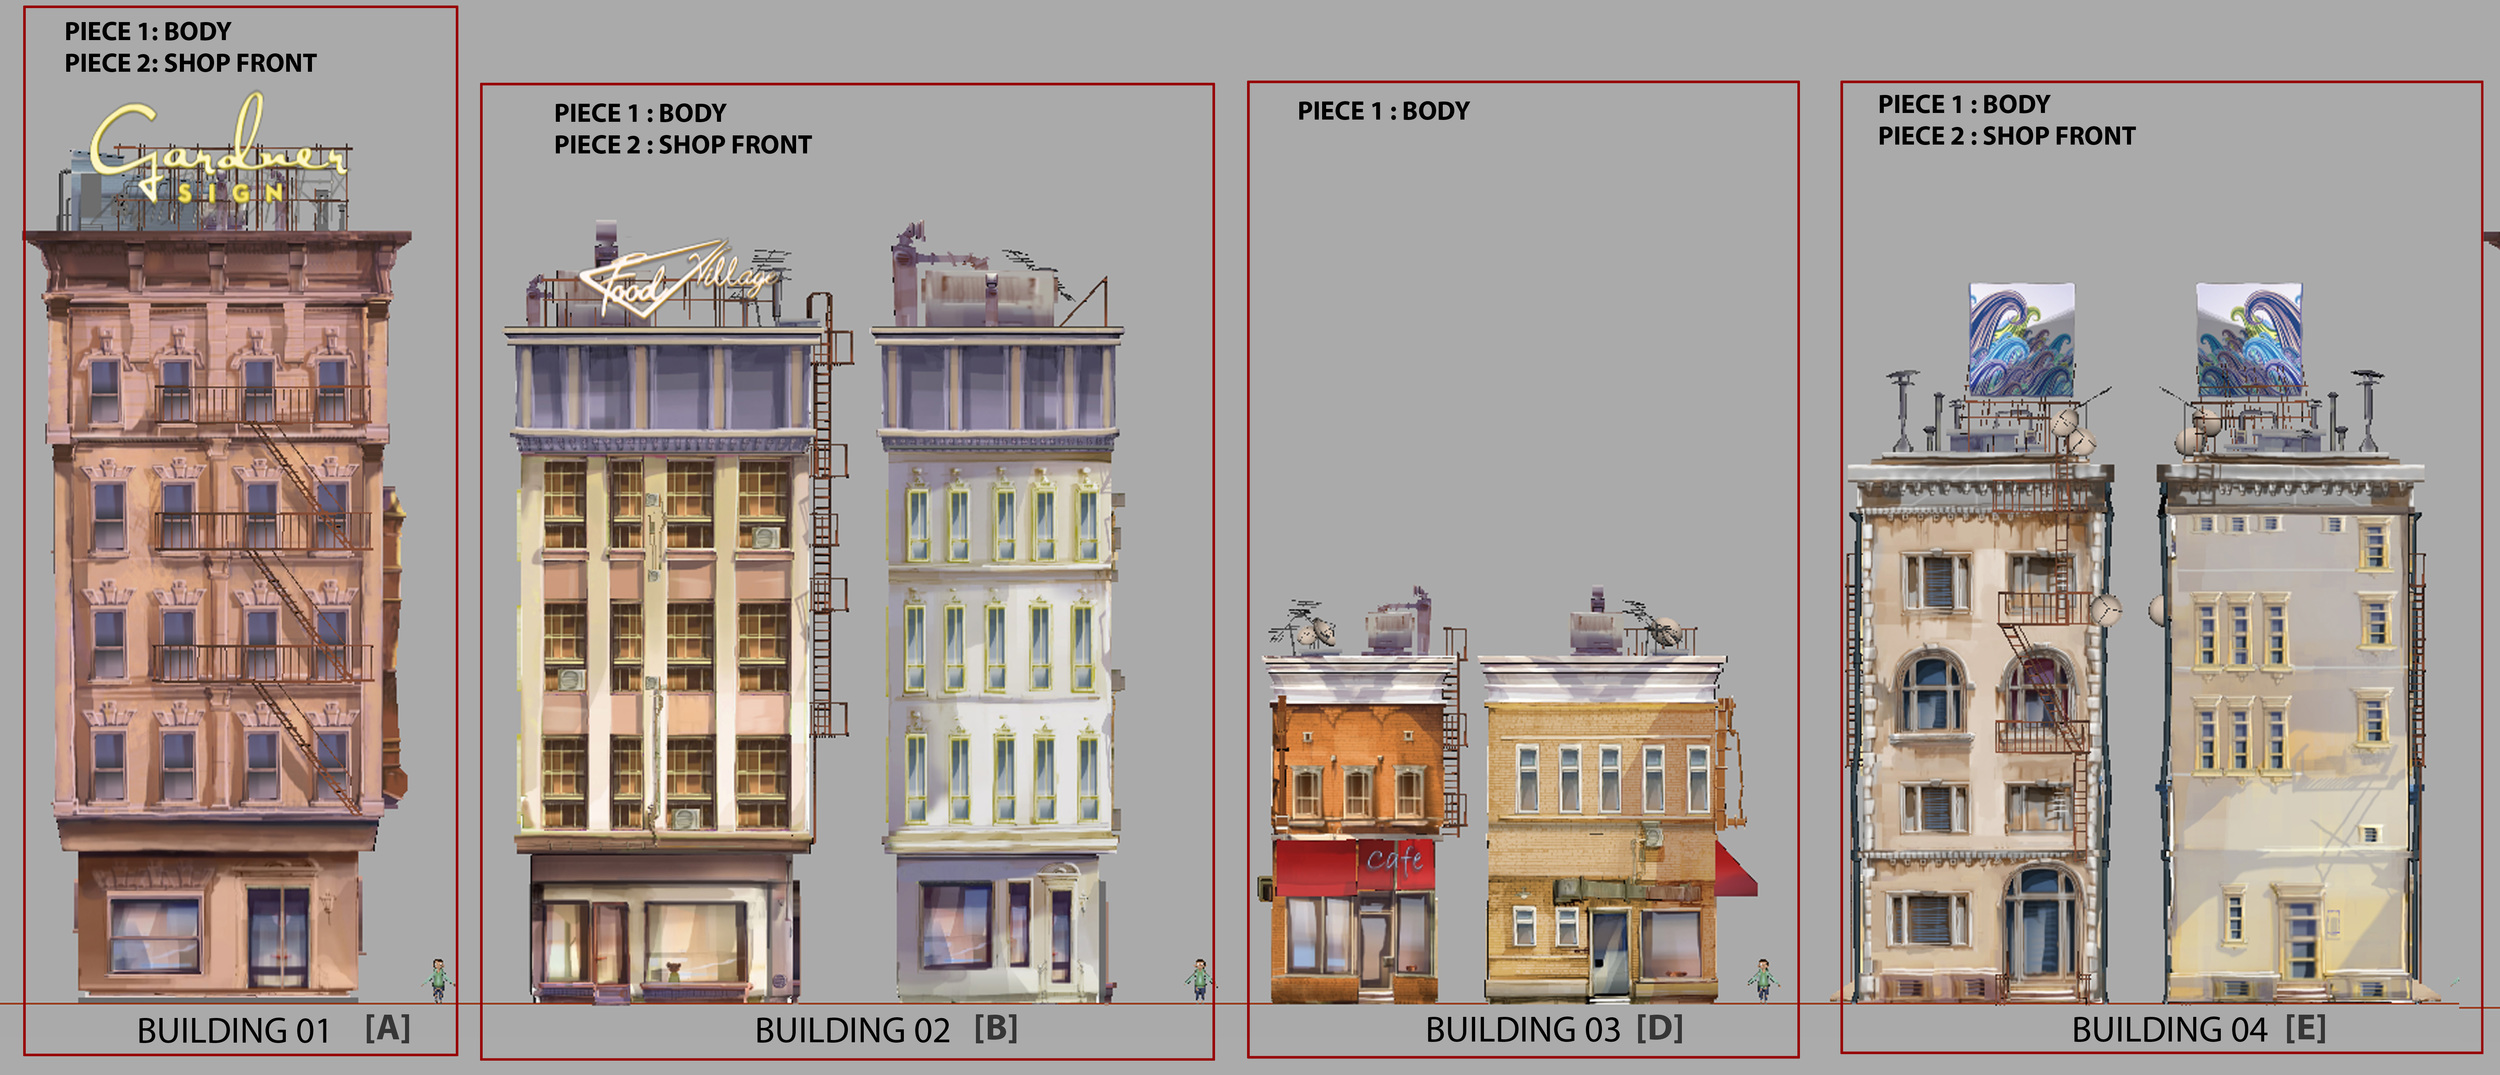 BUILDING_LINEUP_1_WITHOUT_SHOPFRONT_new.jpg